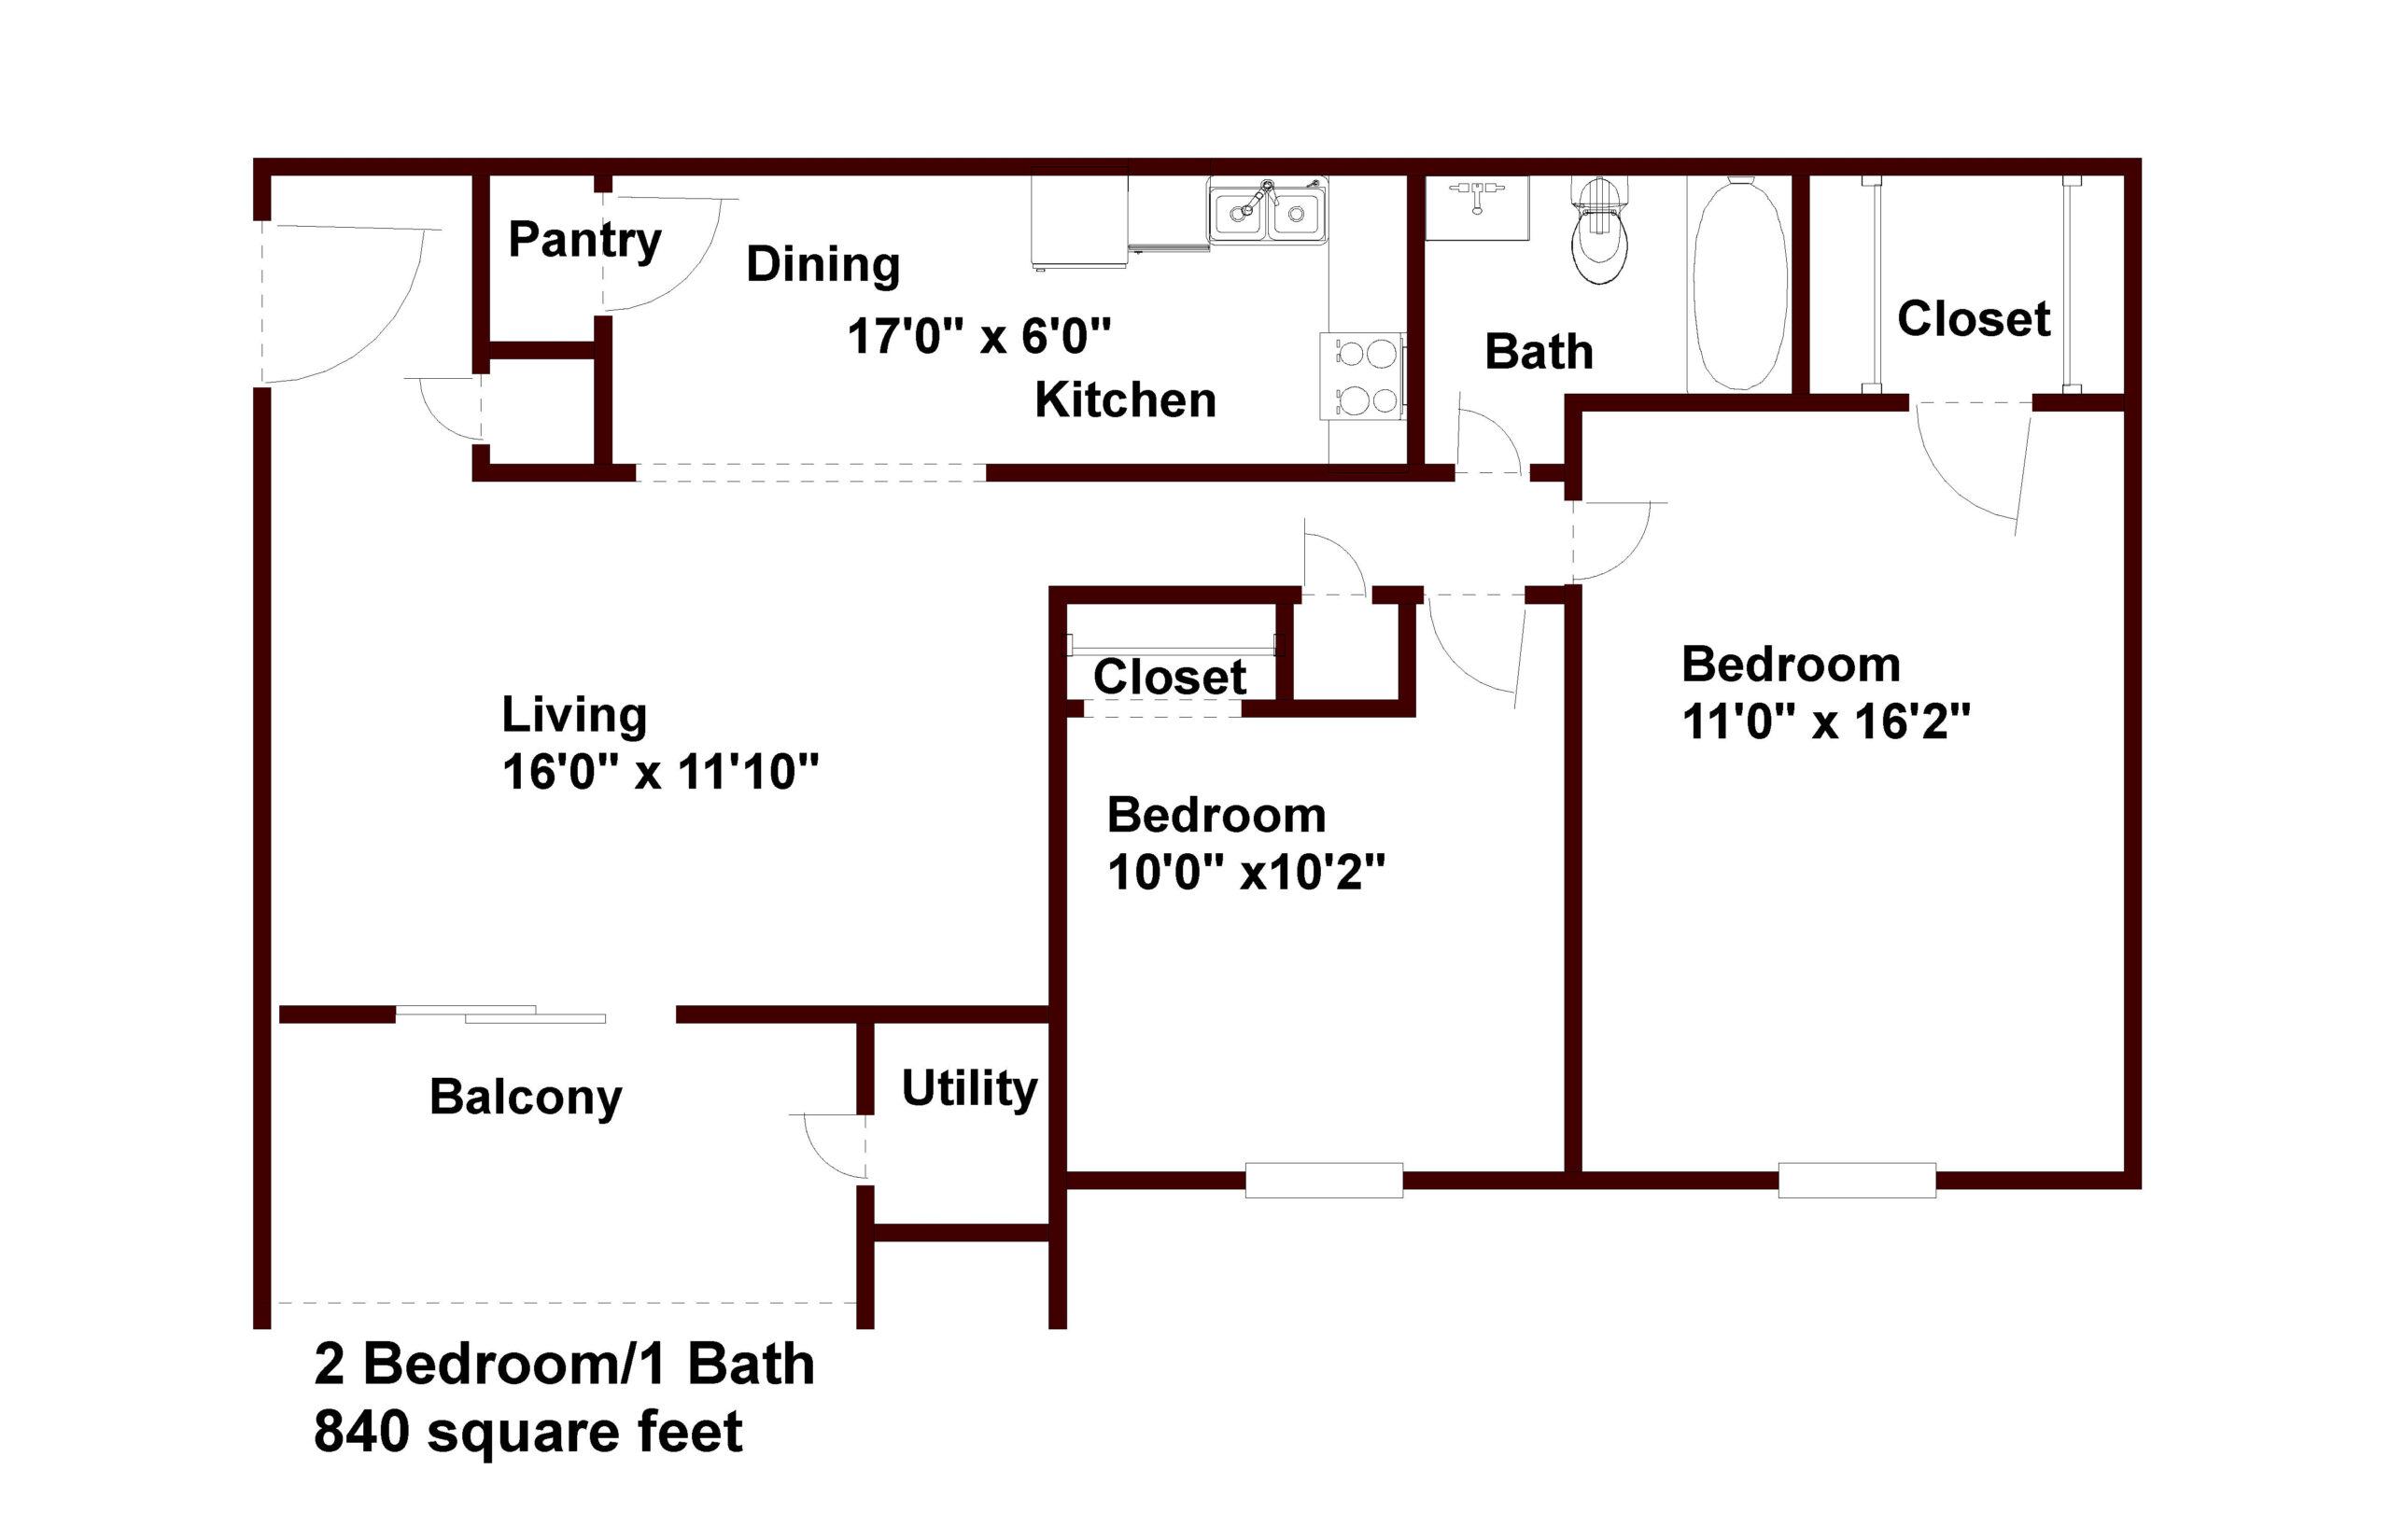 apartments in chapel hill 2 bedroom 1 bath floor plan